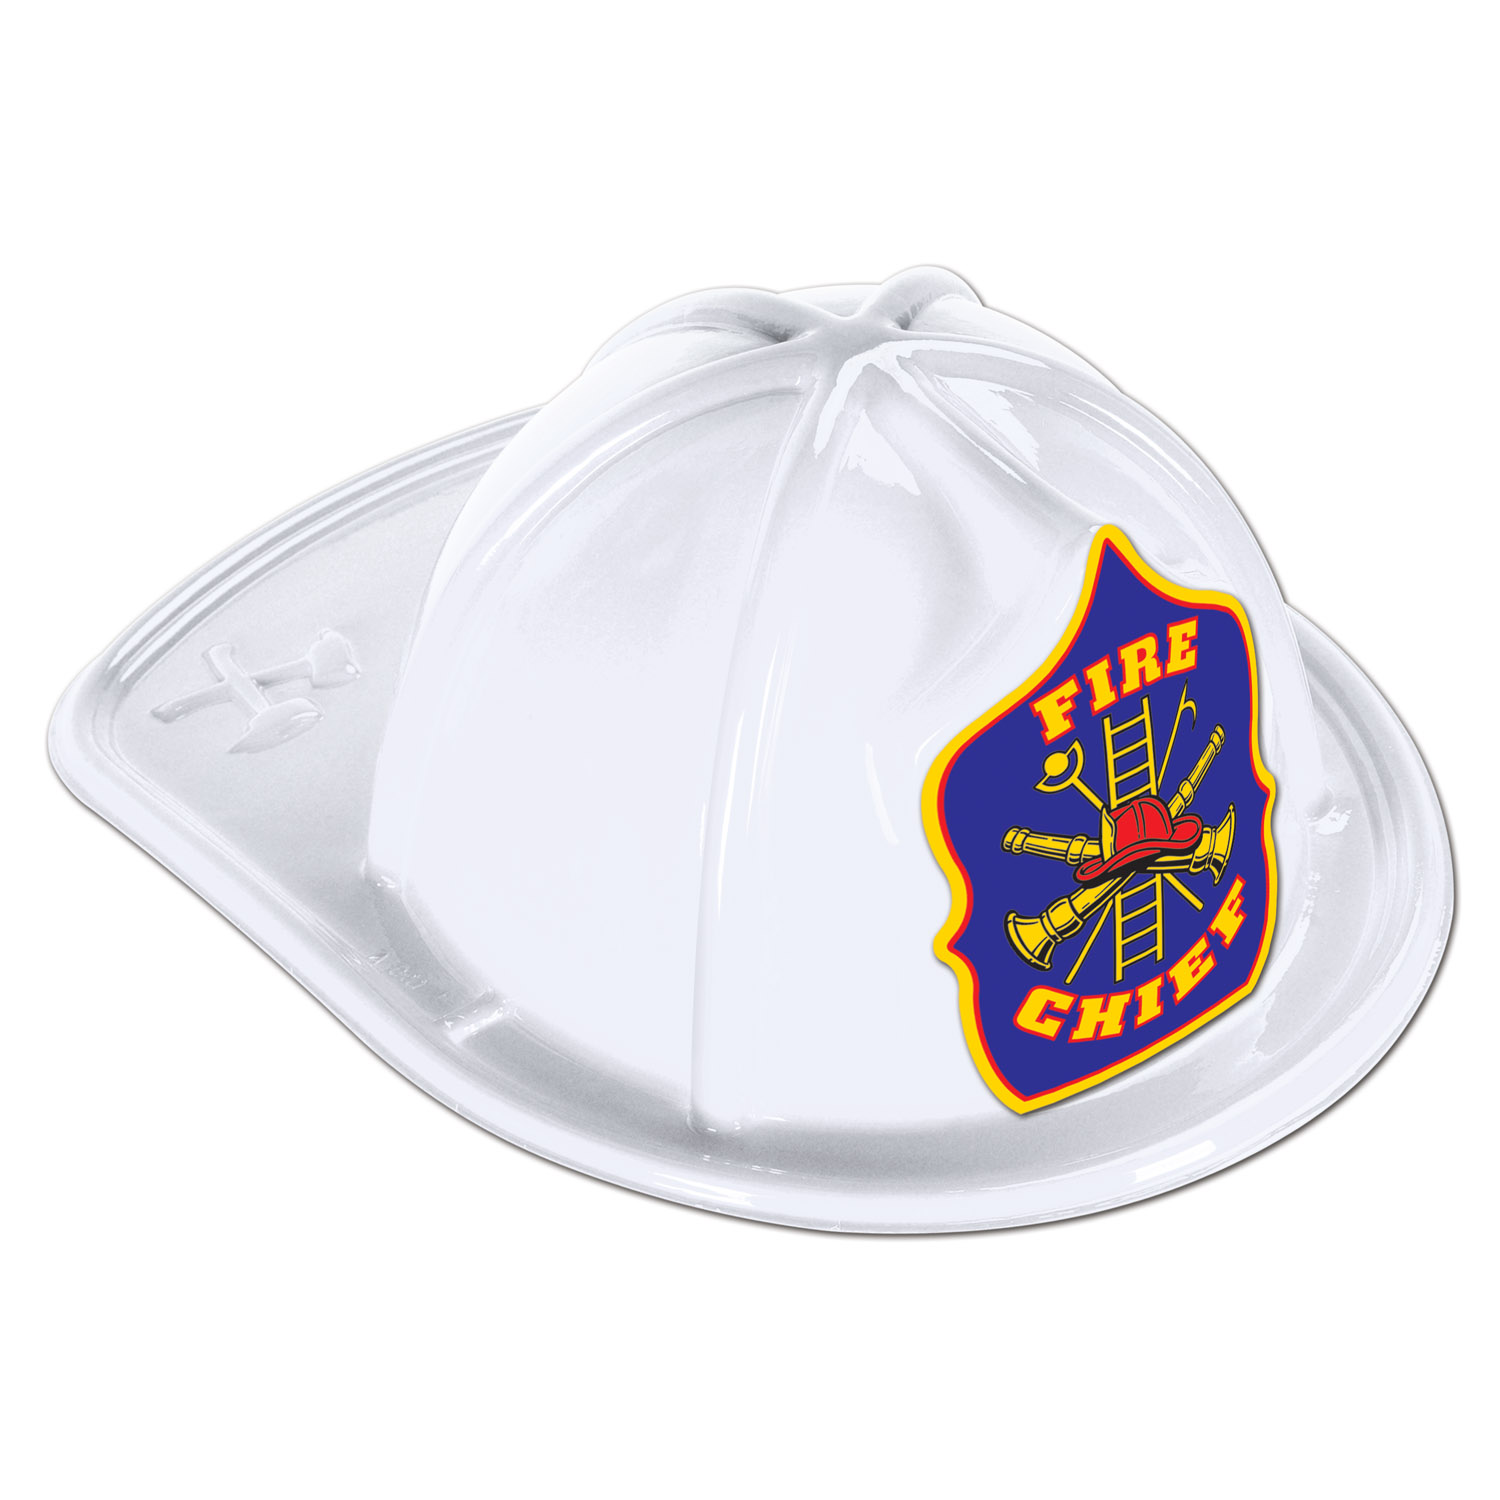 48 Units of White Plastic Fire Chief Hat blue shield; medium head size; elastic attached - Party Hats & Tiara